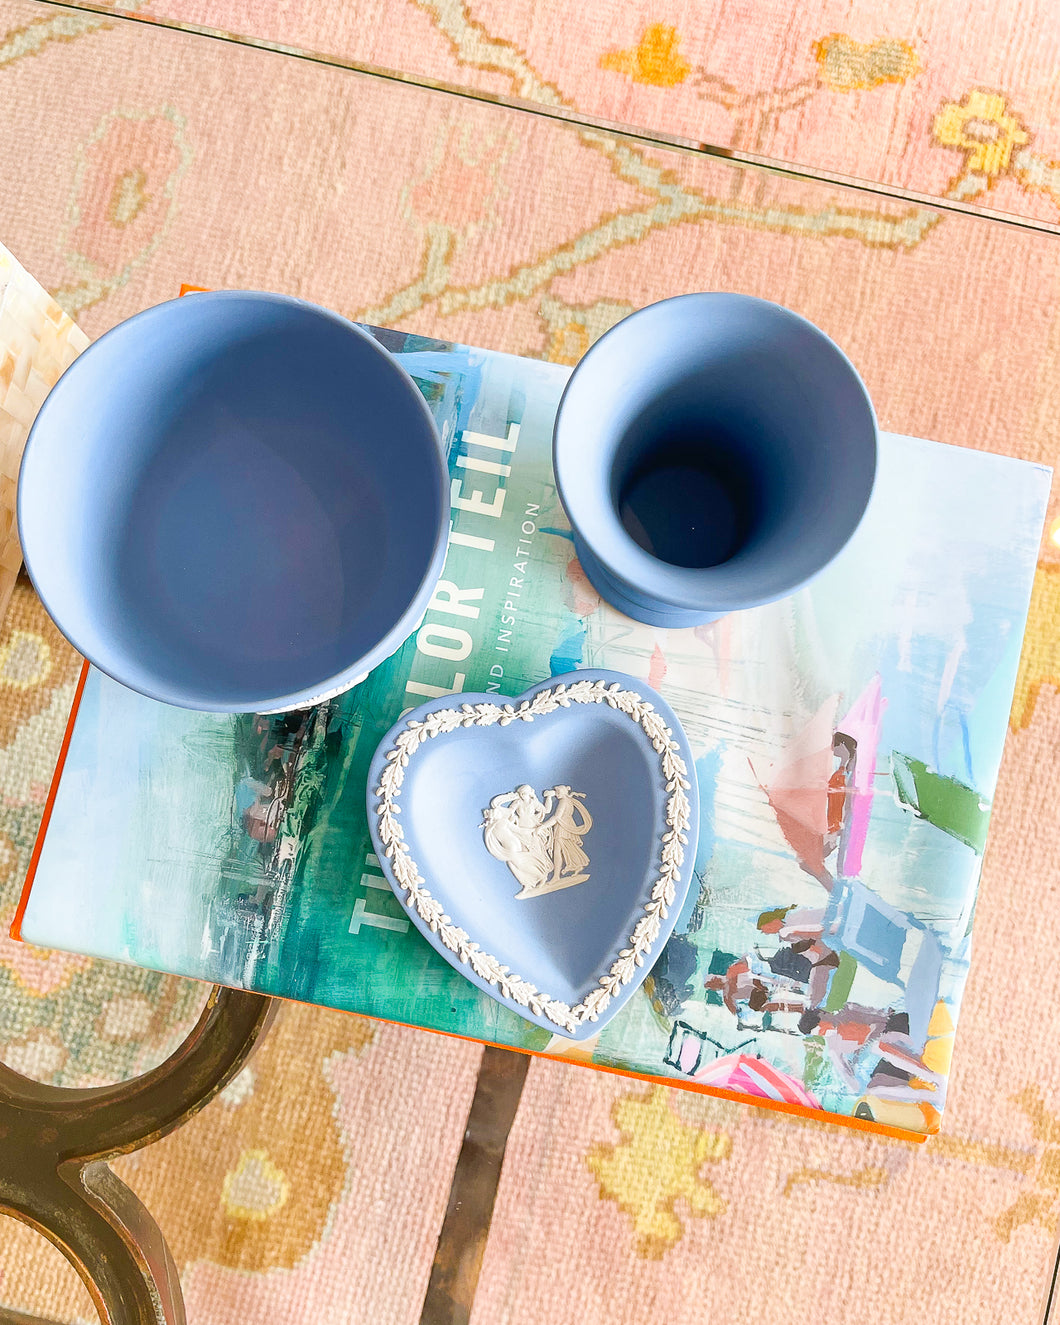 Wedgwood Jasperware Heart Dish